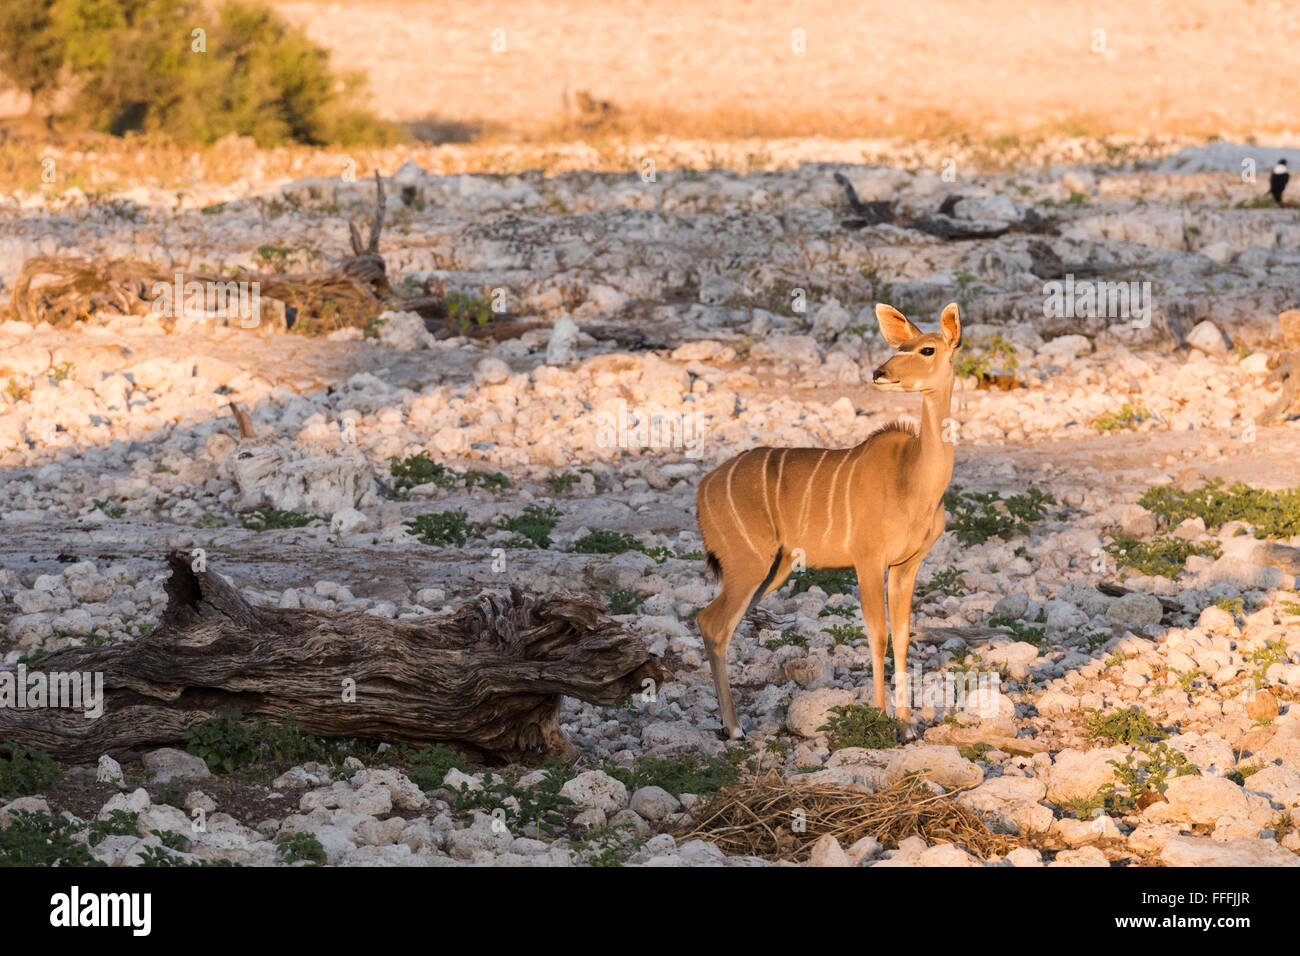 Seule femelle grand koudou (Tragelaphus strepsiceros) debout à côté d'waterhole, Etosha National Photo Stock